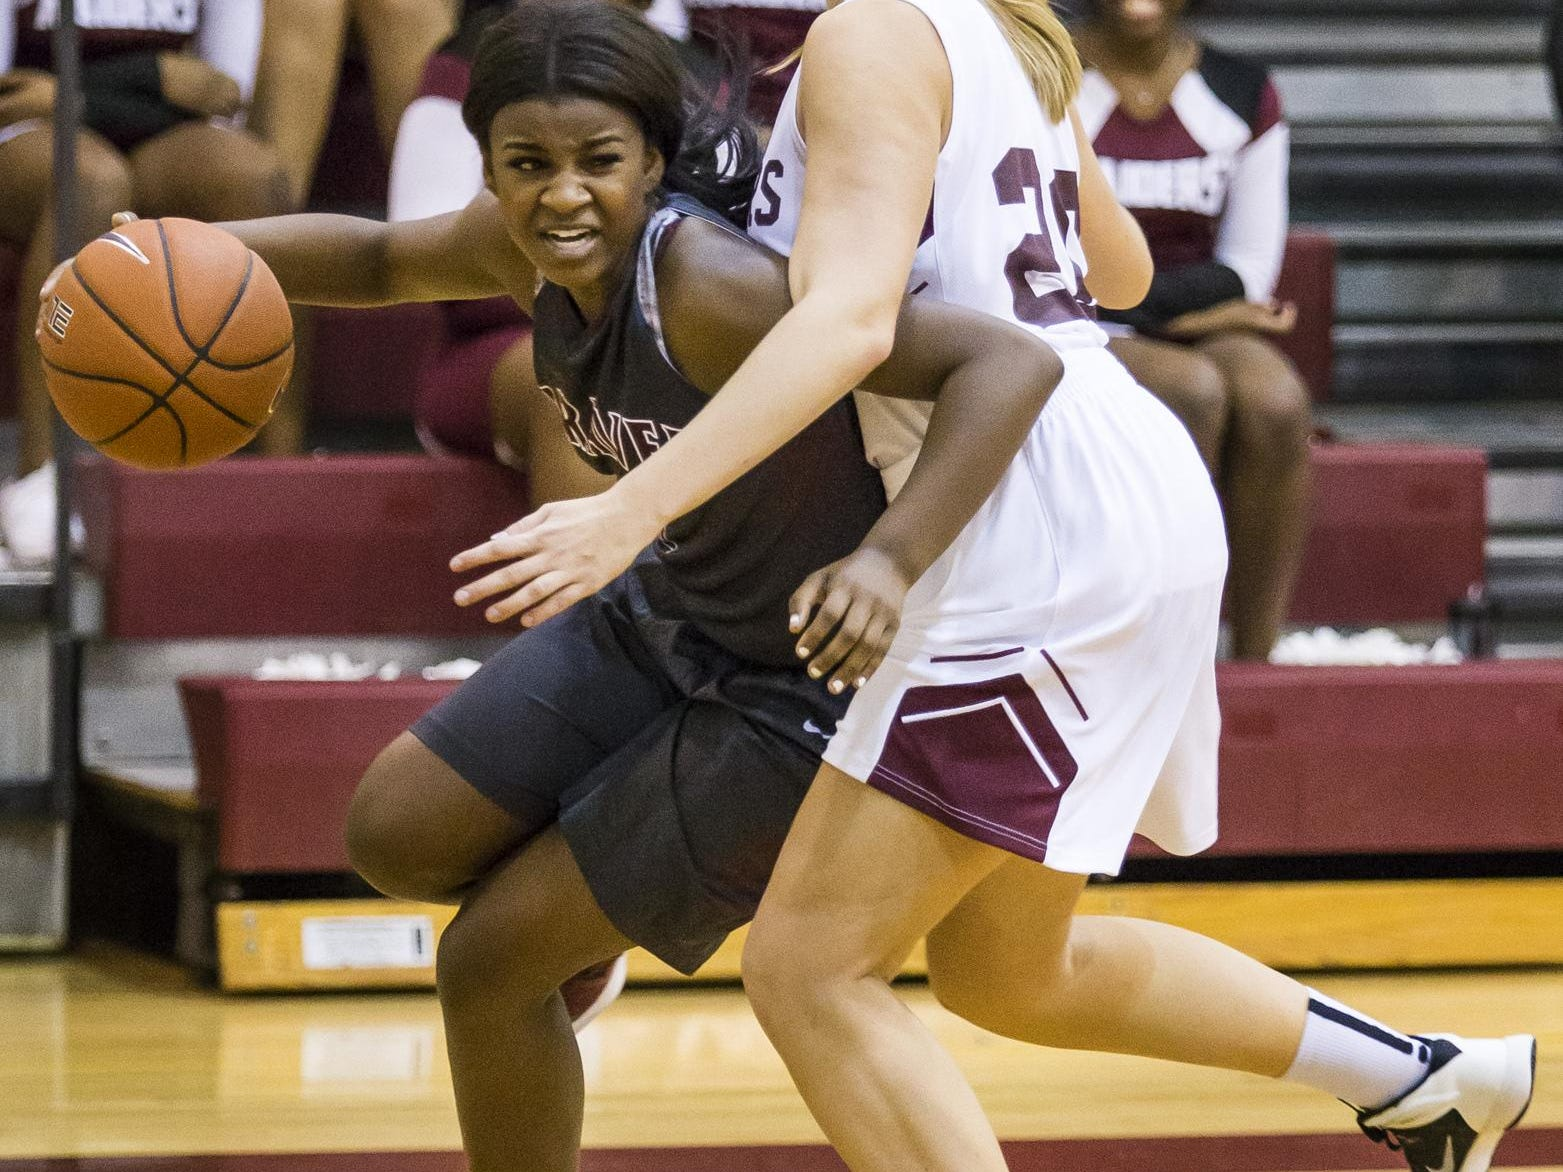 Caravel's Maia Bryson (left) tries to drive past a Concord defender in the first half of Caravel's 42-26 win over Concord at Concord High School on Monday night.